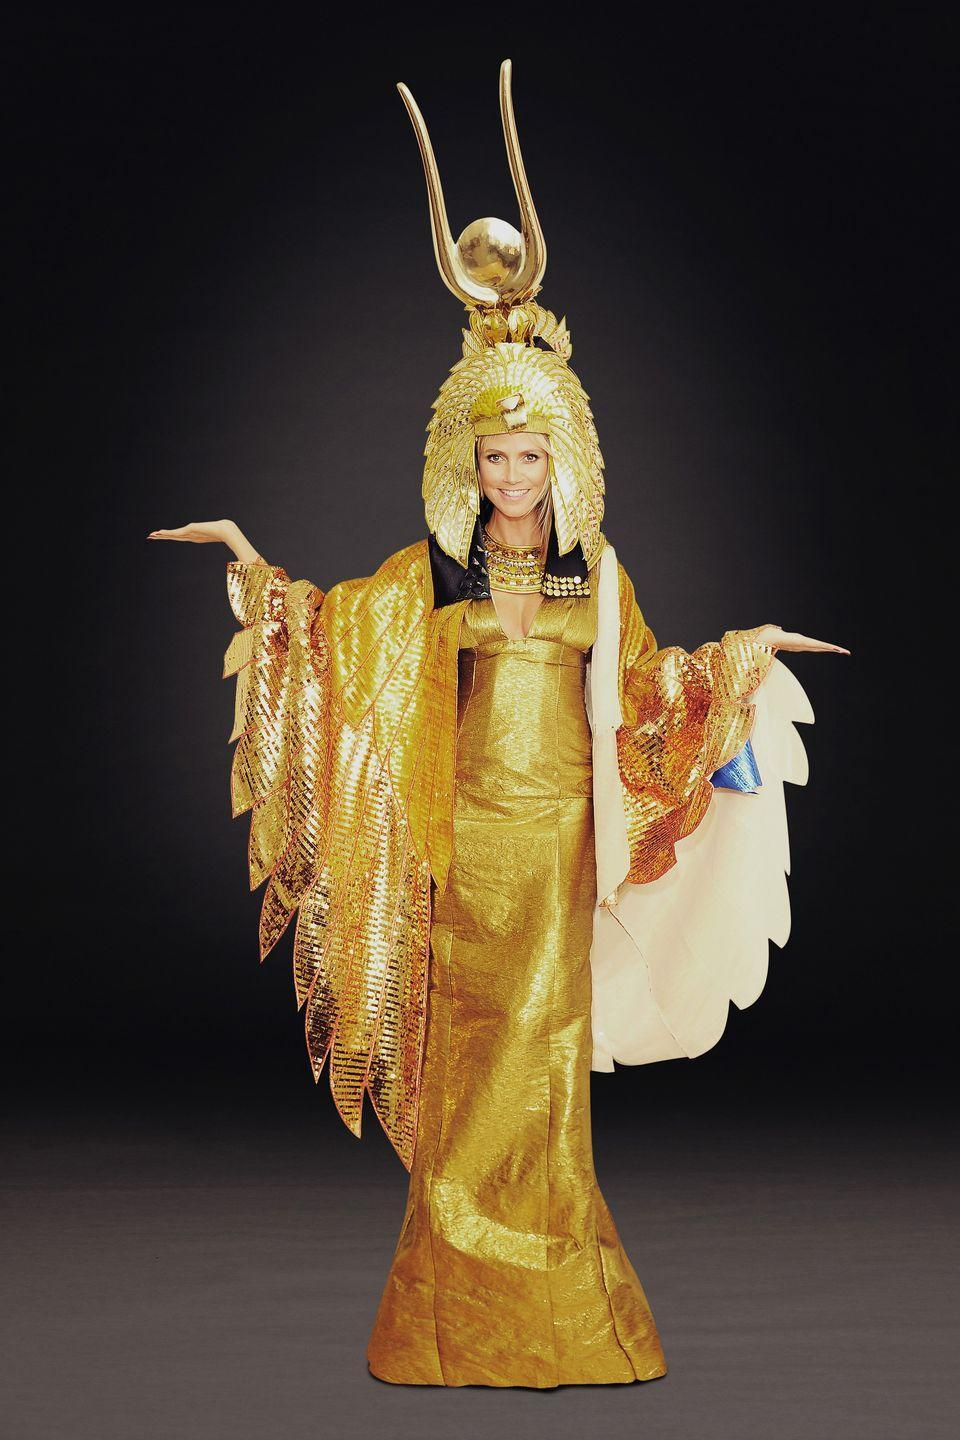 <p>Despite planning on dressing up as Cleopatra for her 2012 Hallowen party, the model was forced to cancel her annual shindig due to Hurricane Sandy, which hit New York that autumn. </p><p>'Hope you & your loved ones are safe after the storm [sic],' the model tweeted ahead of the party. 'Canceling my Halloween party...postponing to a haunted Christmas.'</p>